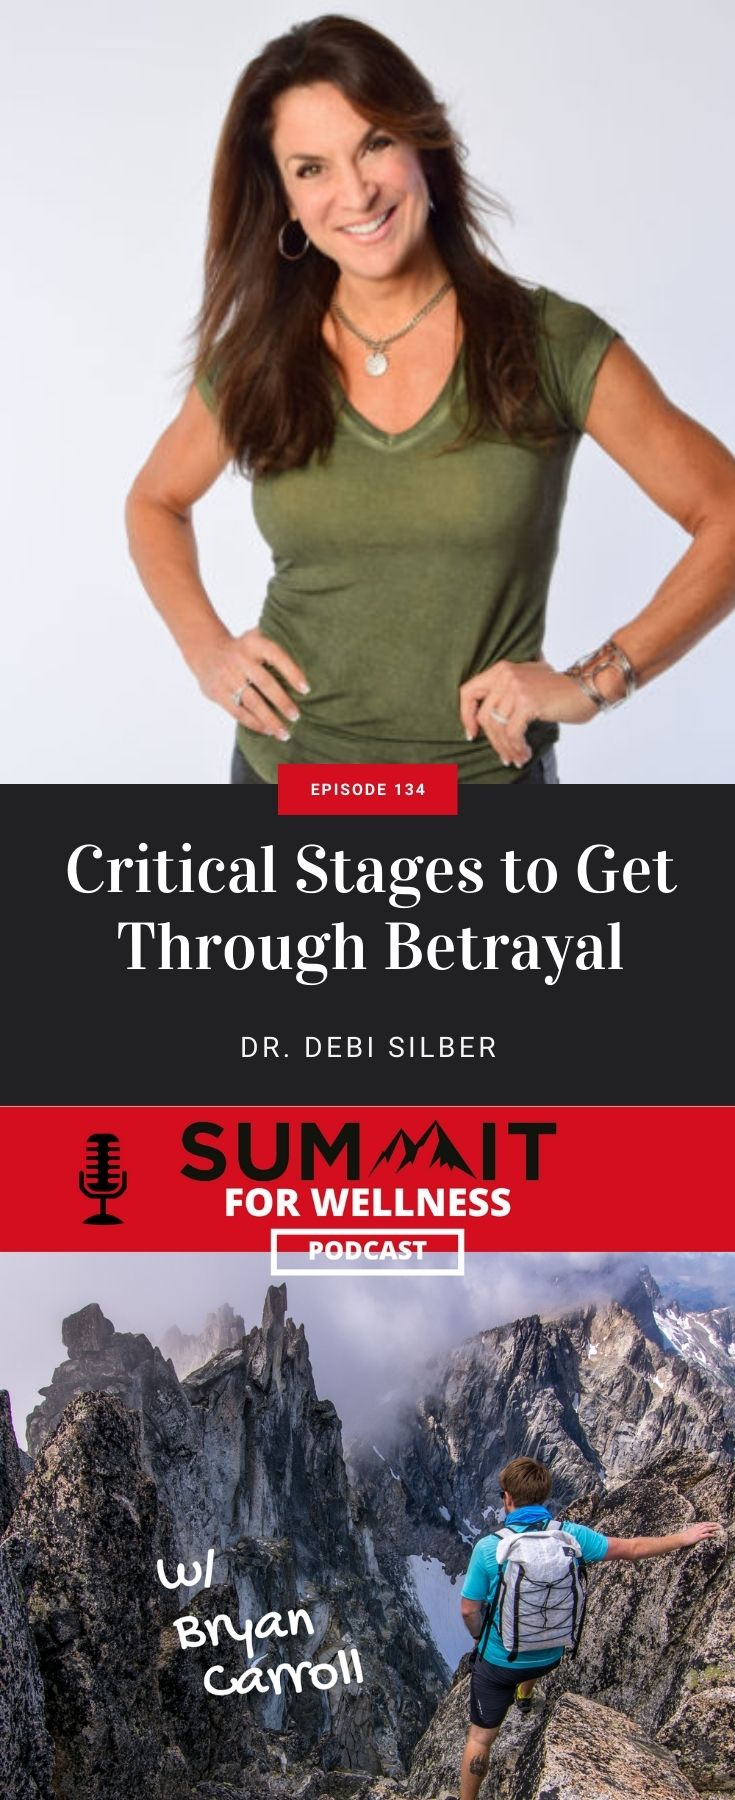 Learn how to move beyond betrayal with Dr. Debi Silber